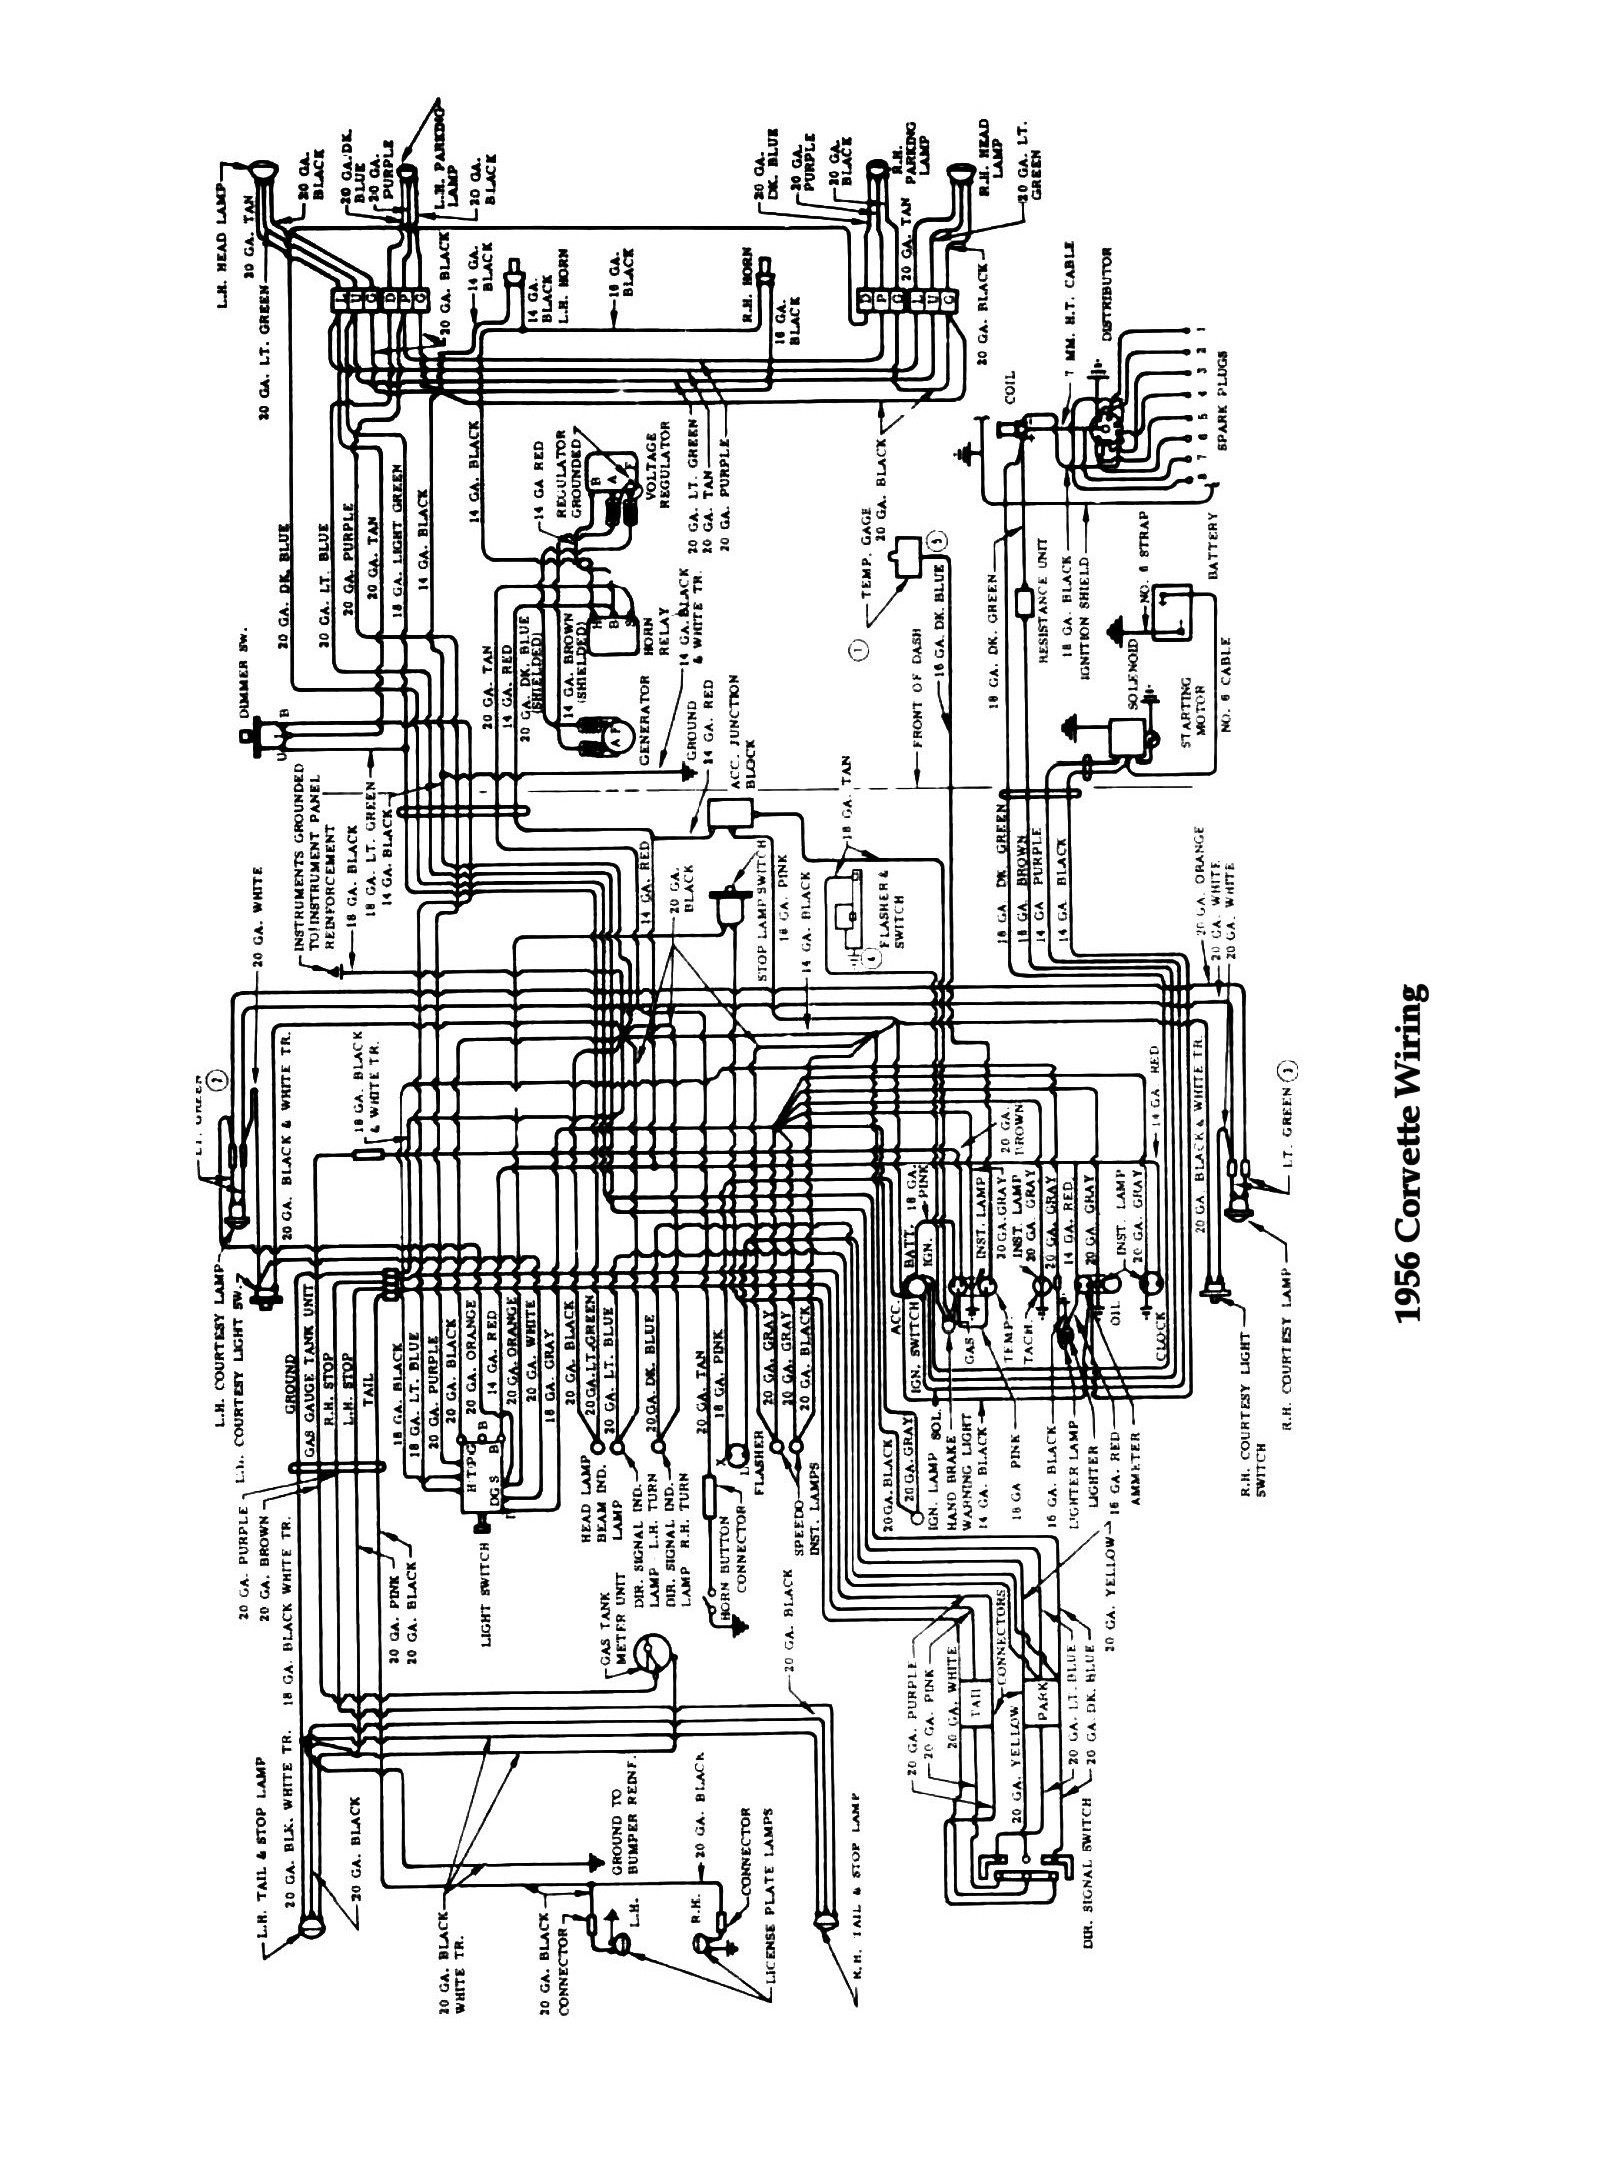 1968 chrysler convertible wiring diagram schematic wiring diagram \u2022 1995 cadillac deville ignition system diagram 1959 corvette wiring diagram wiring diagram database rh brandgogo co 1968 dodge coronet wiring diagram 1978 chrysler wiring diagram for the distrib